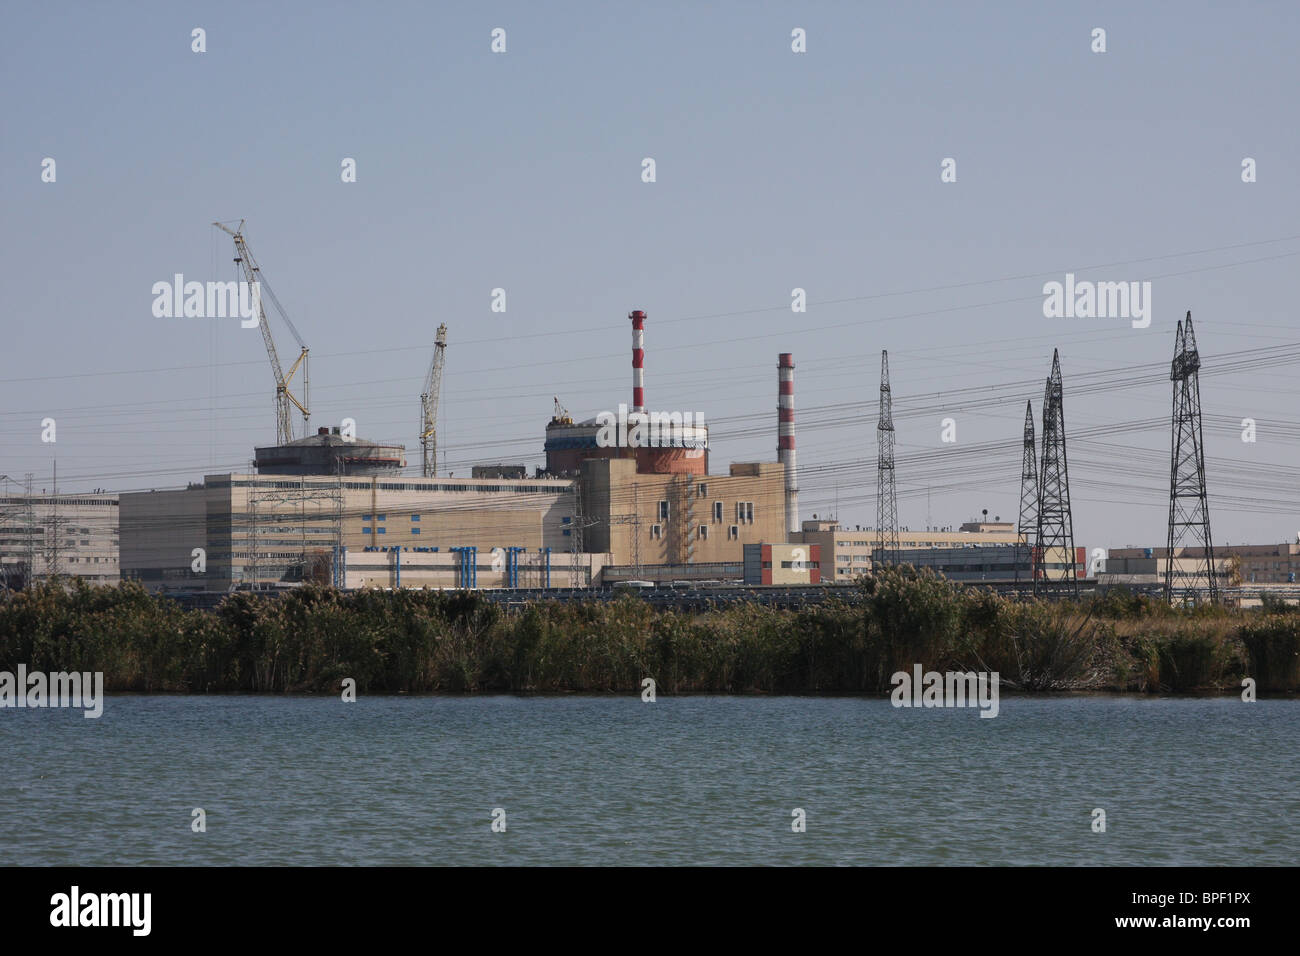 Rostov (previously - Volgodonsk) nuclear power plant - not an easy fate 51